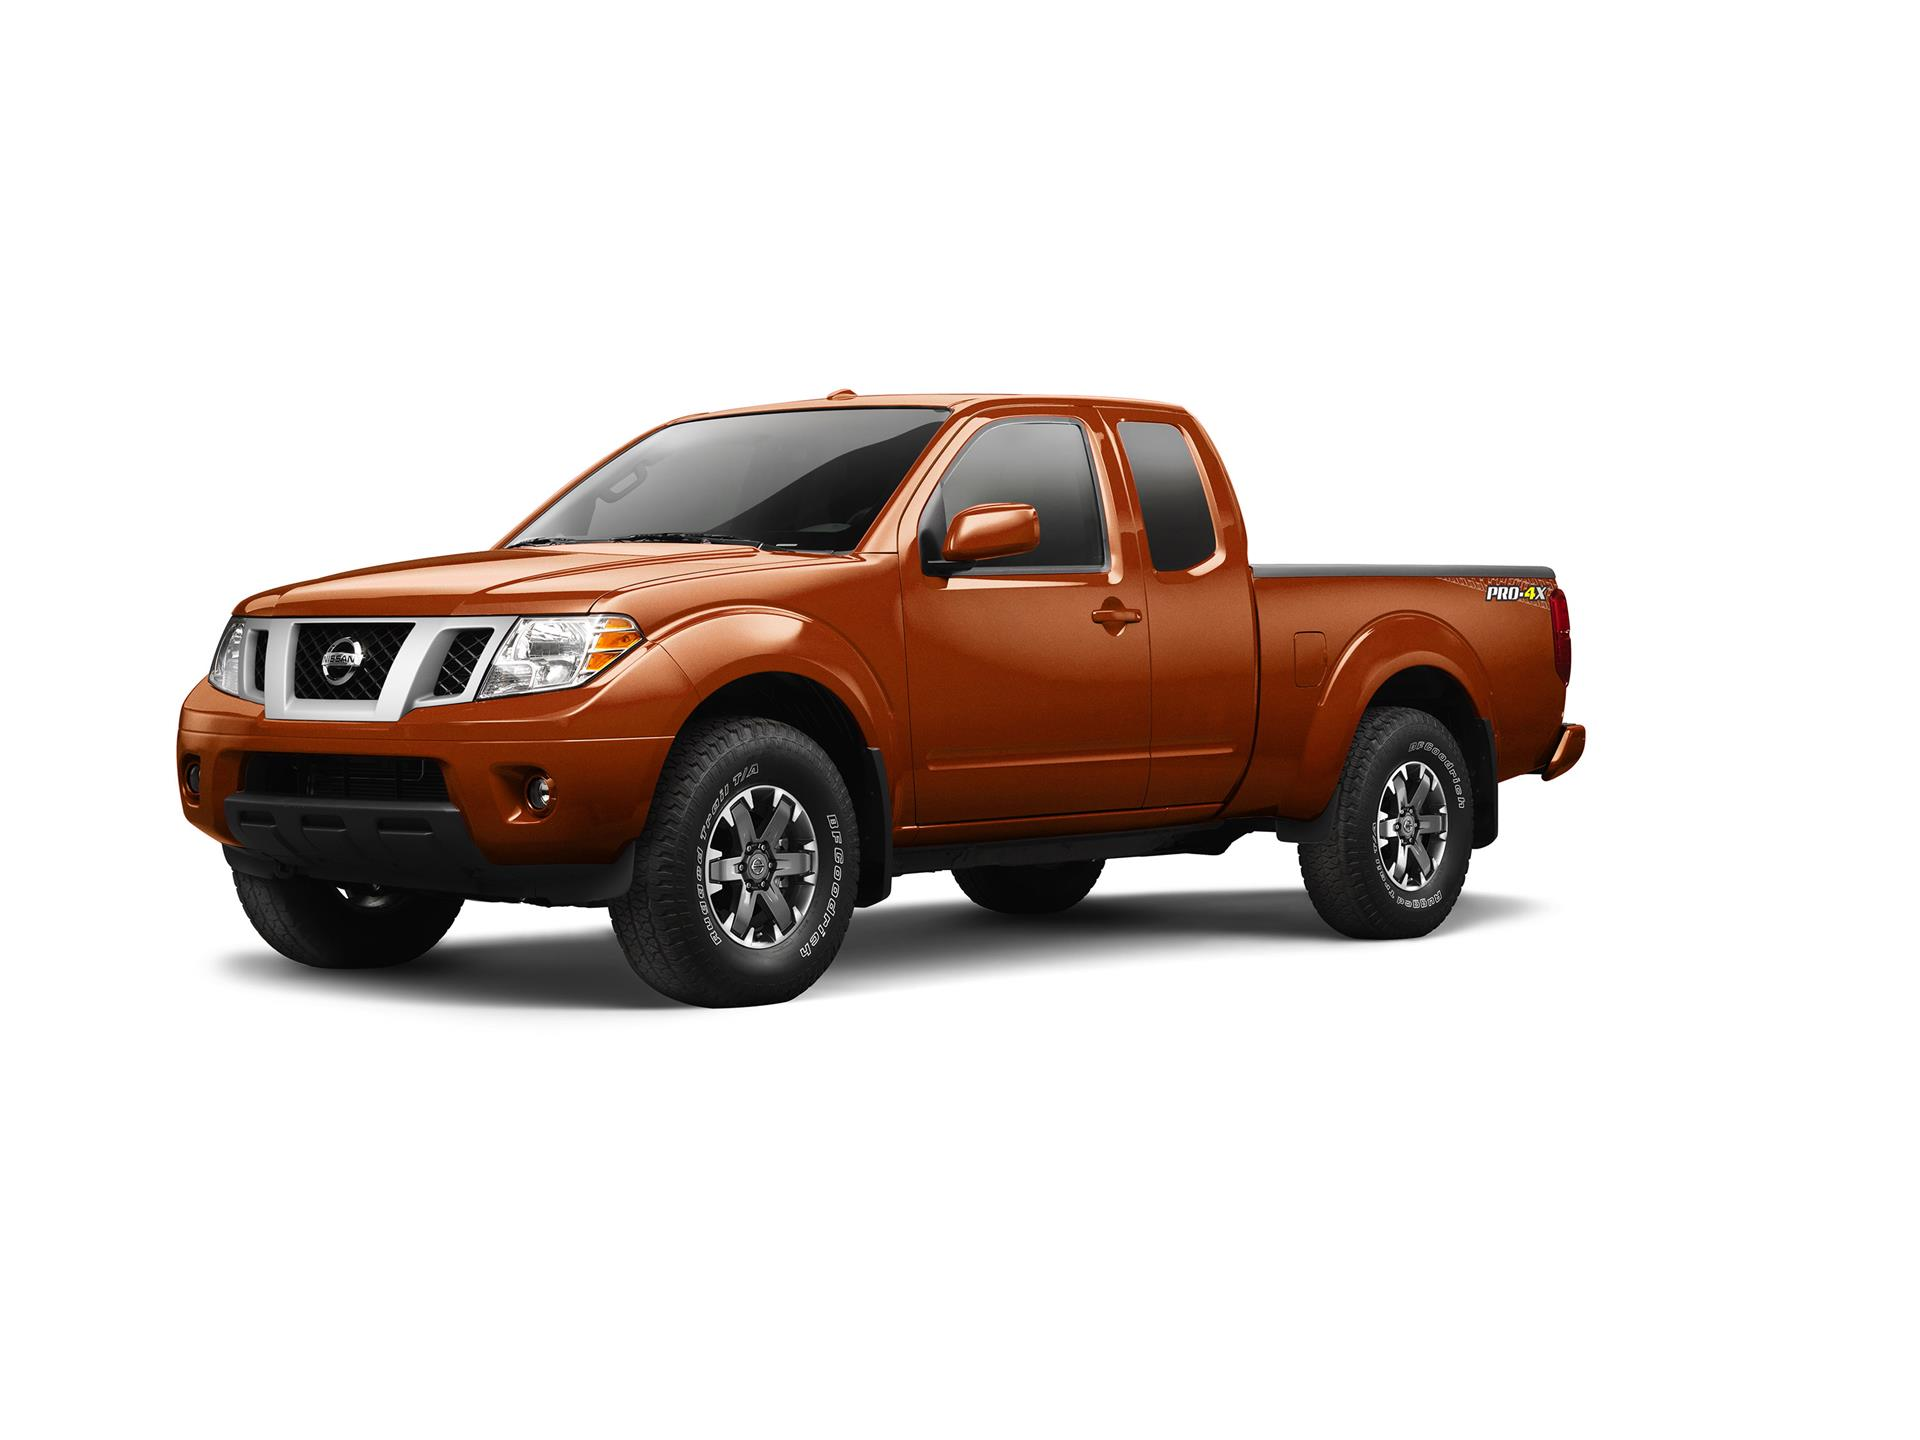 2016 Nissan Frontier News and Information - conceptcarz.com